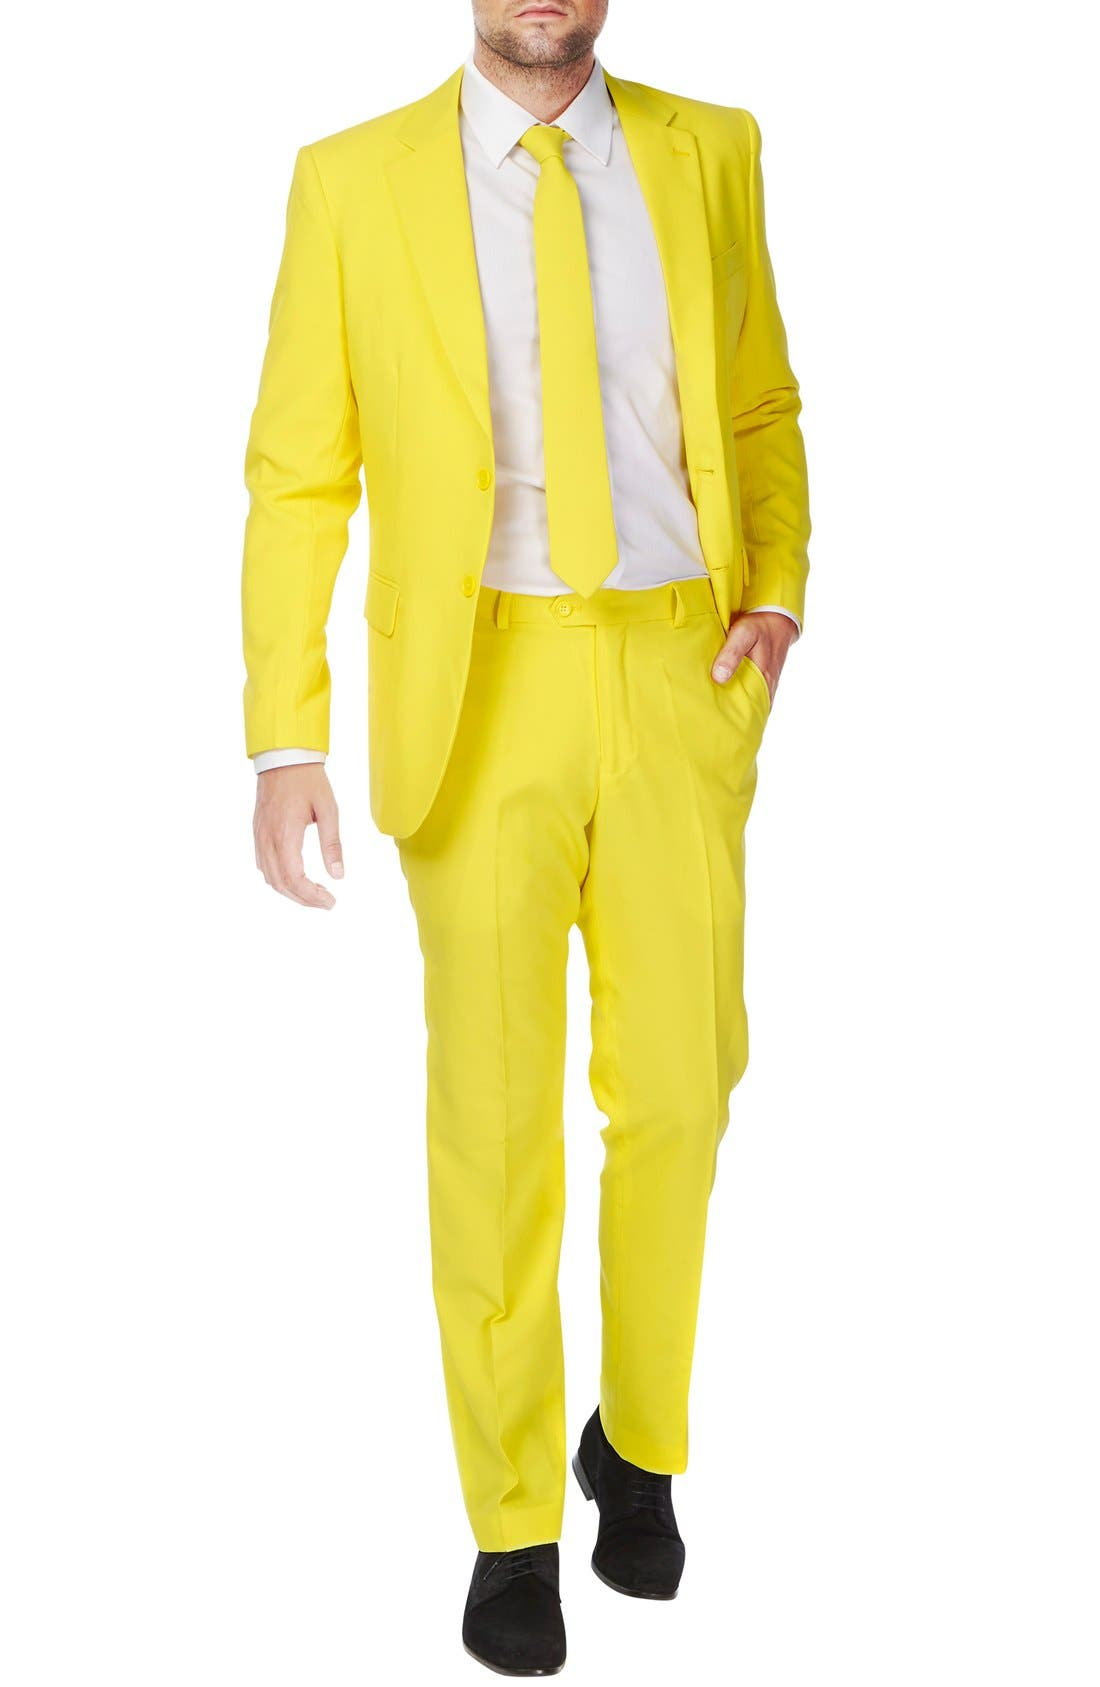 'Yellow Fellow' Trim Fit Two-Piece Suit with Tie,                             Main thumbnail 1, color,                             700